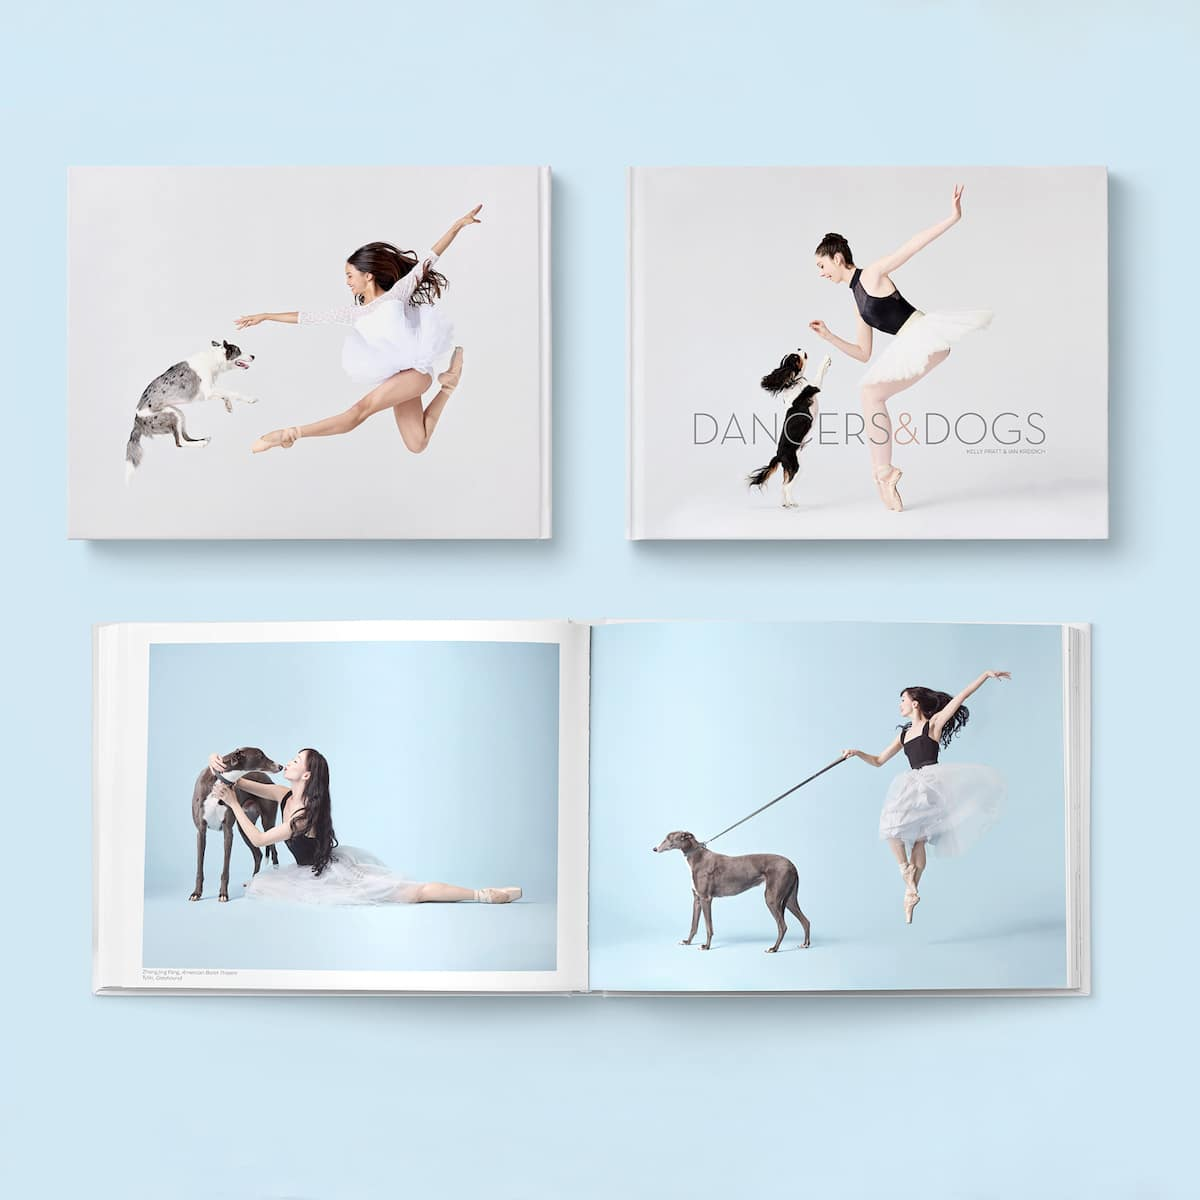 Dancers and Dogs Book